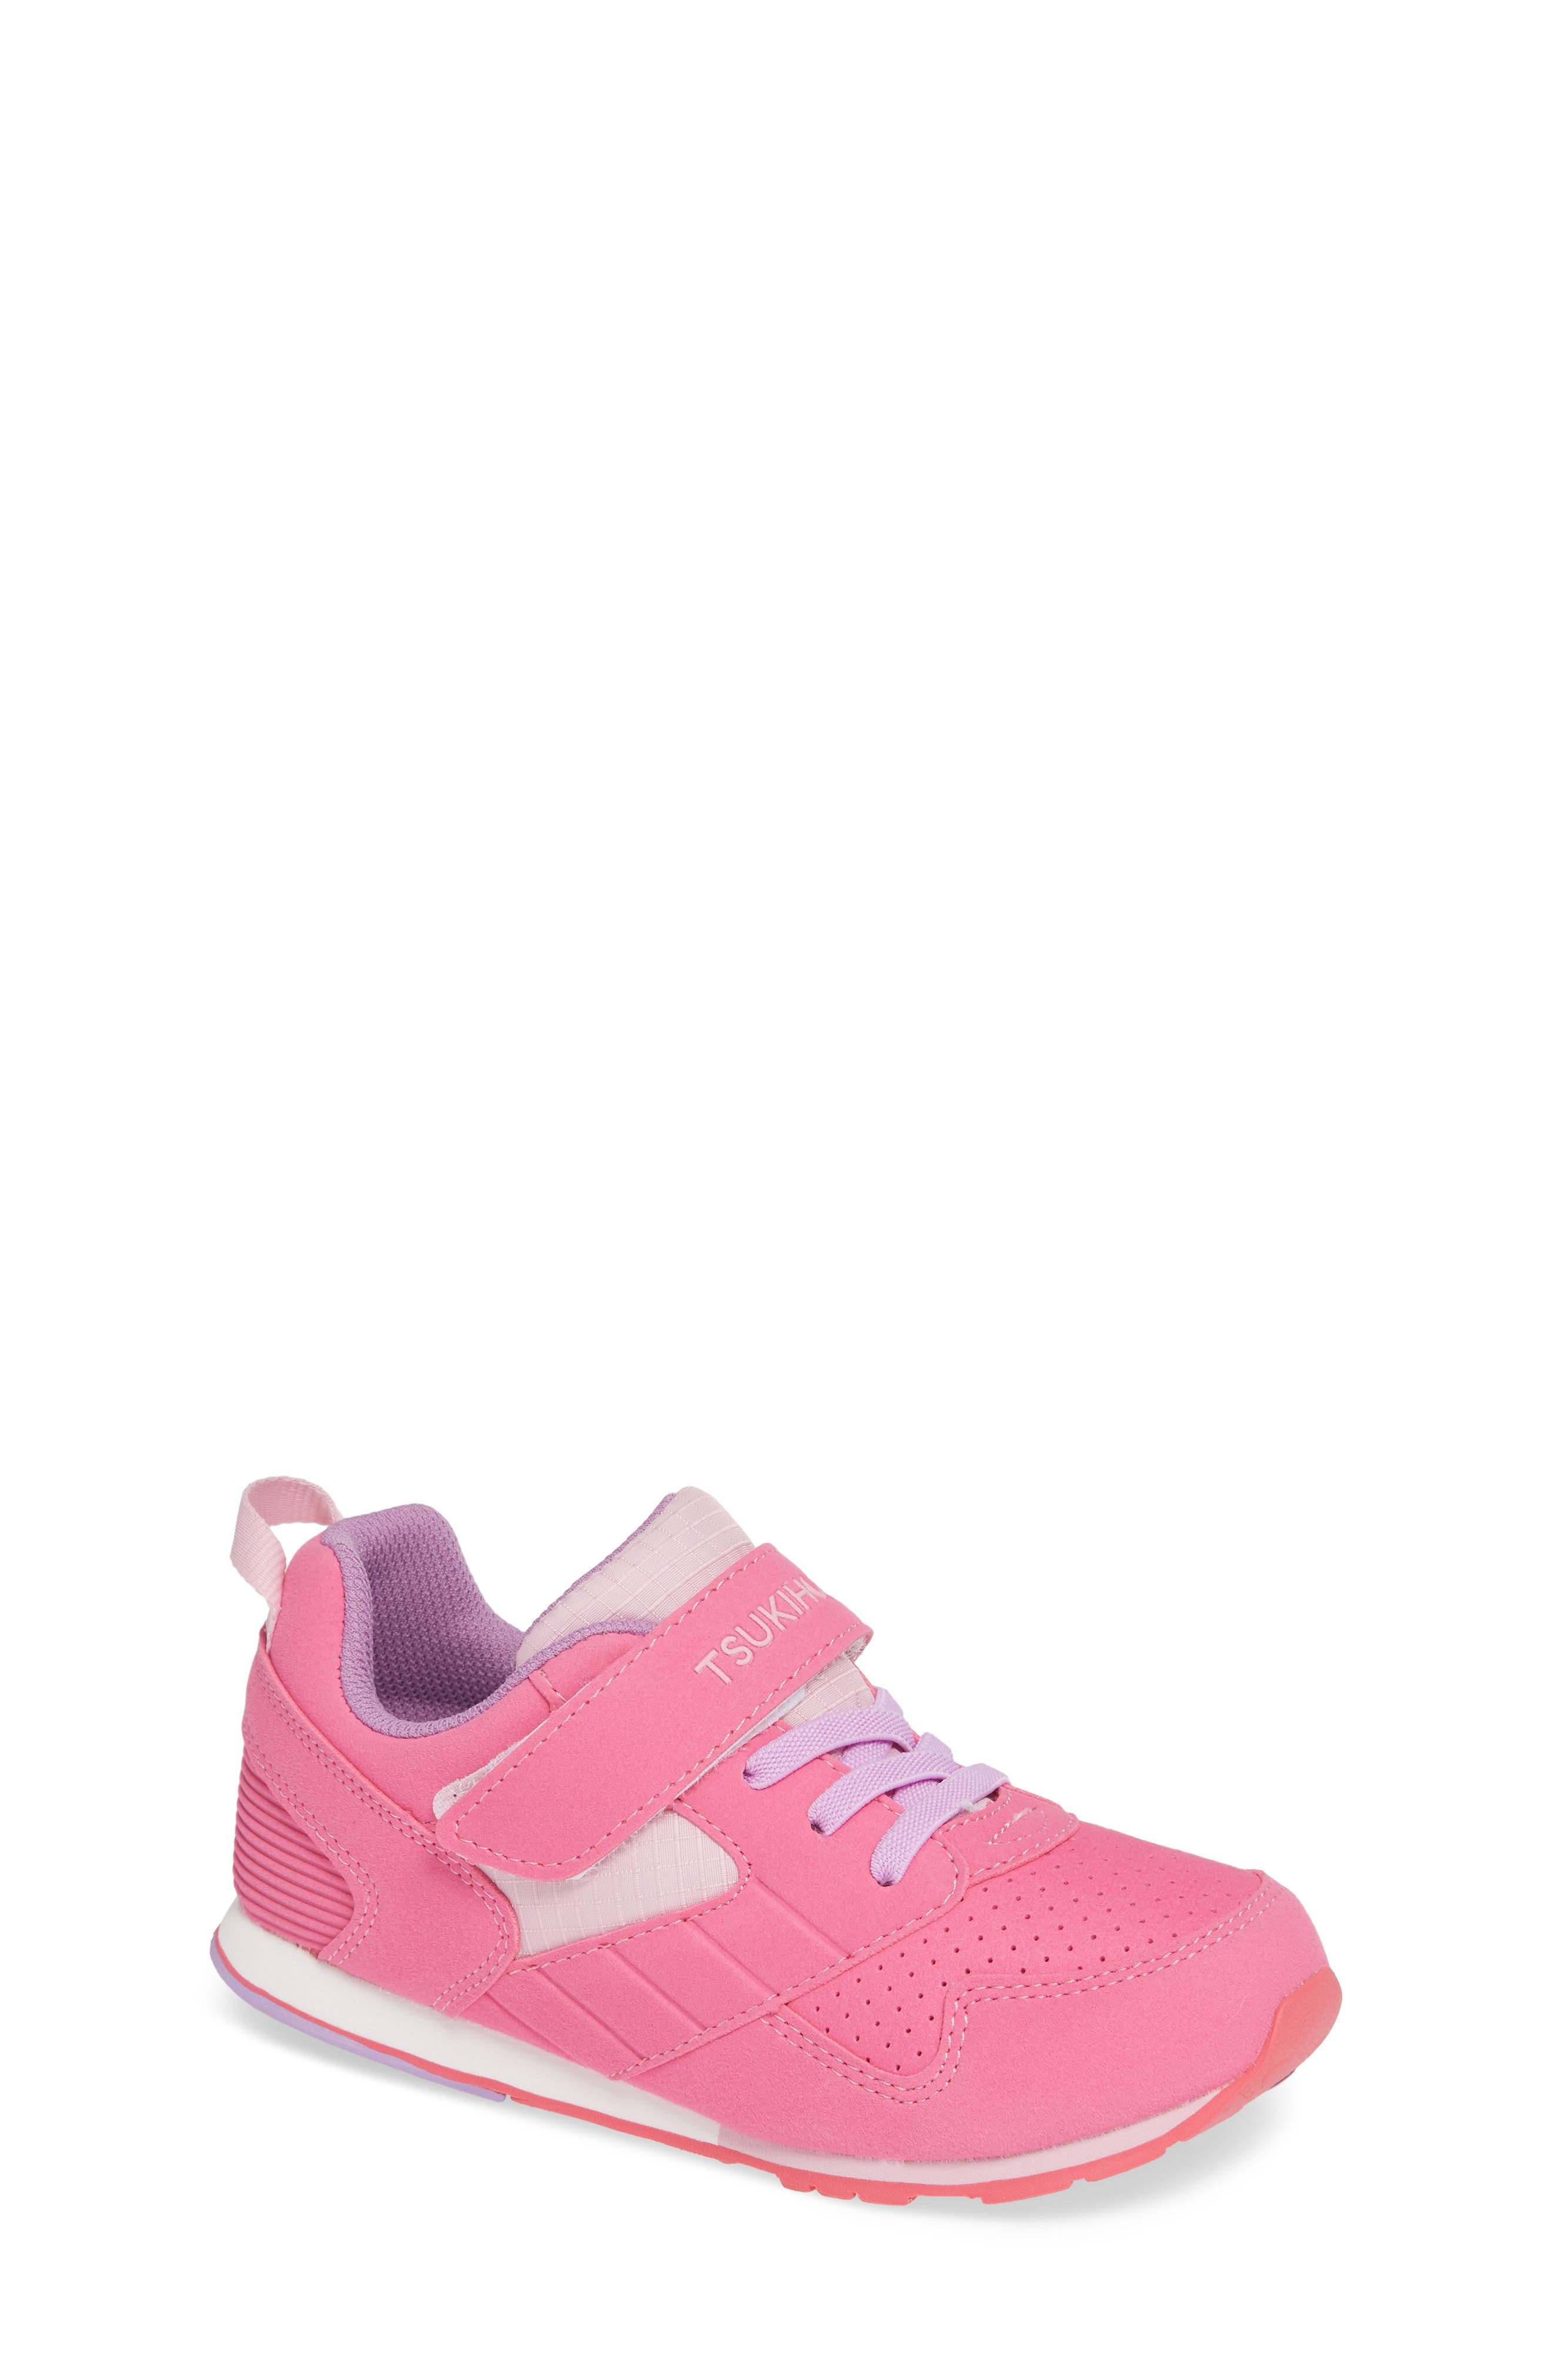 Racer Washable Sneaker,                         Main,                         color, FUCHSIA/ PINK